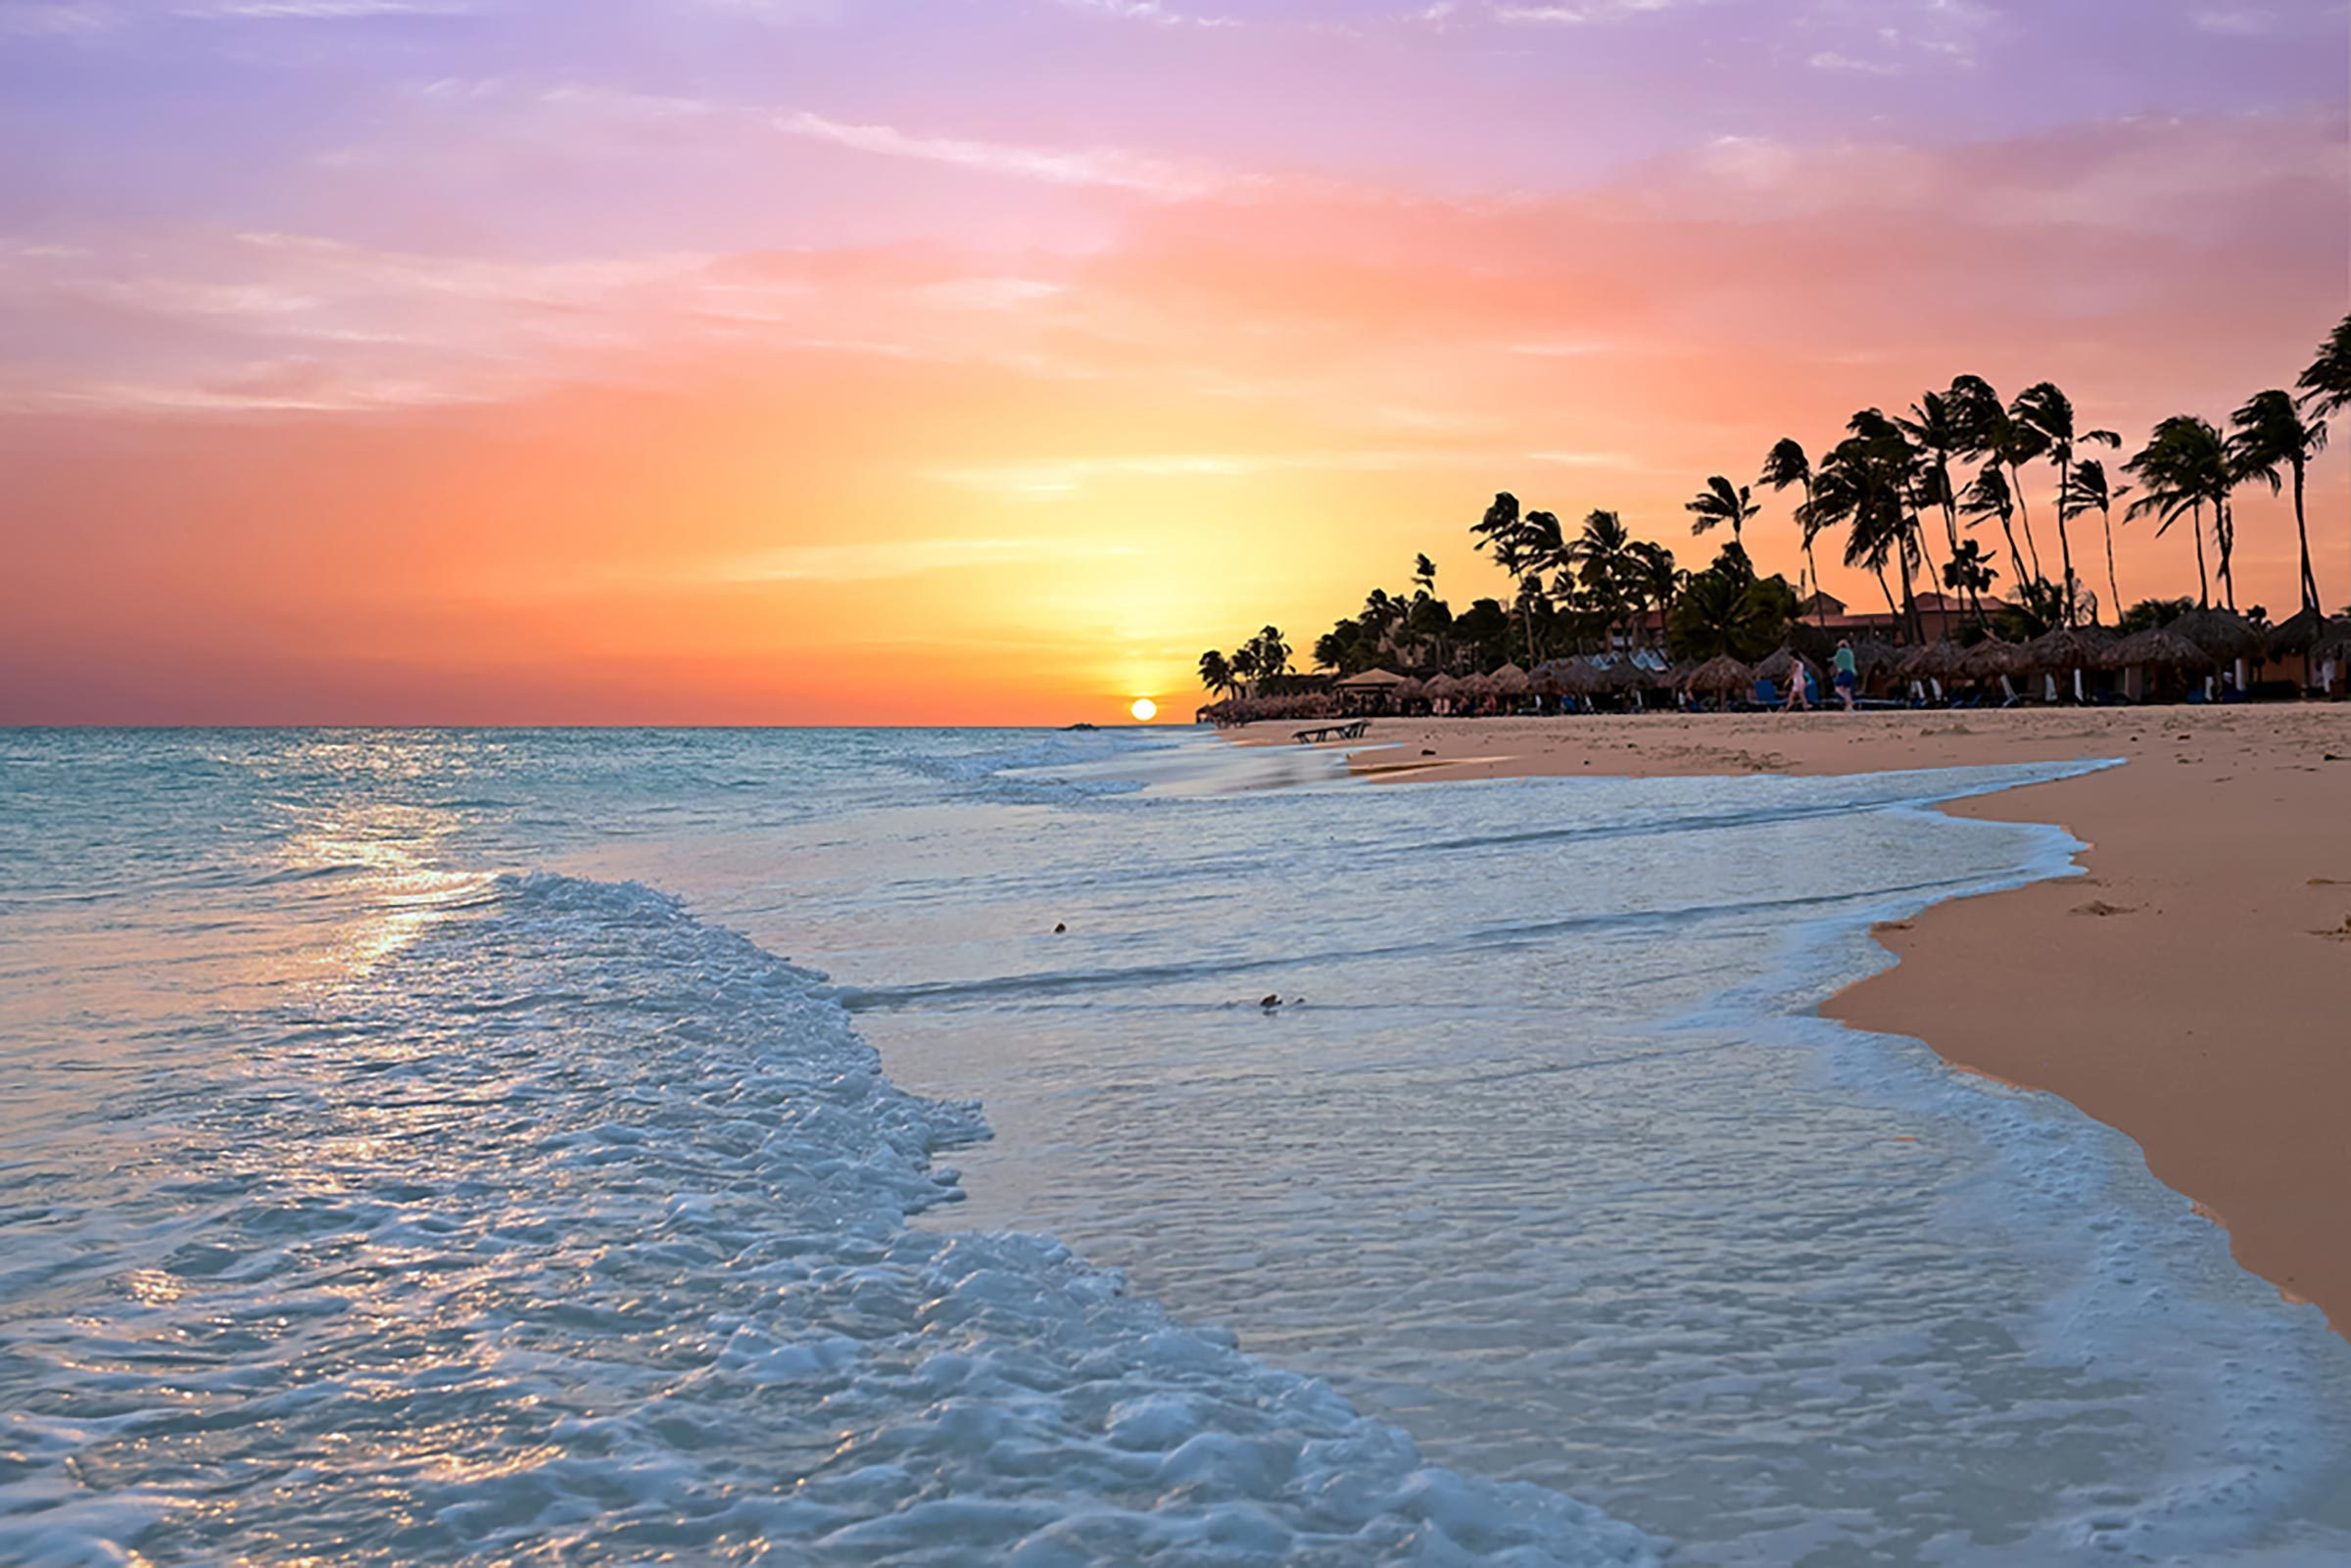 Carribean Beauty: Aruba Is The Caribbean's Most Revisited Travel Destination